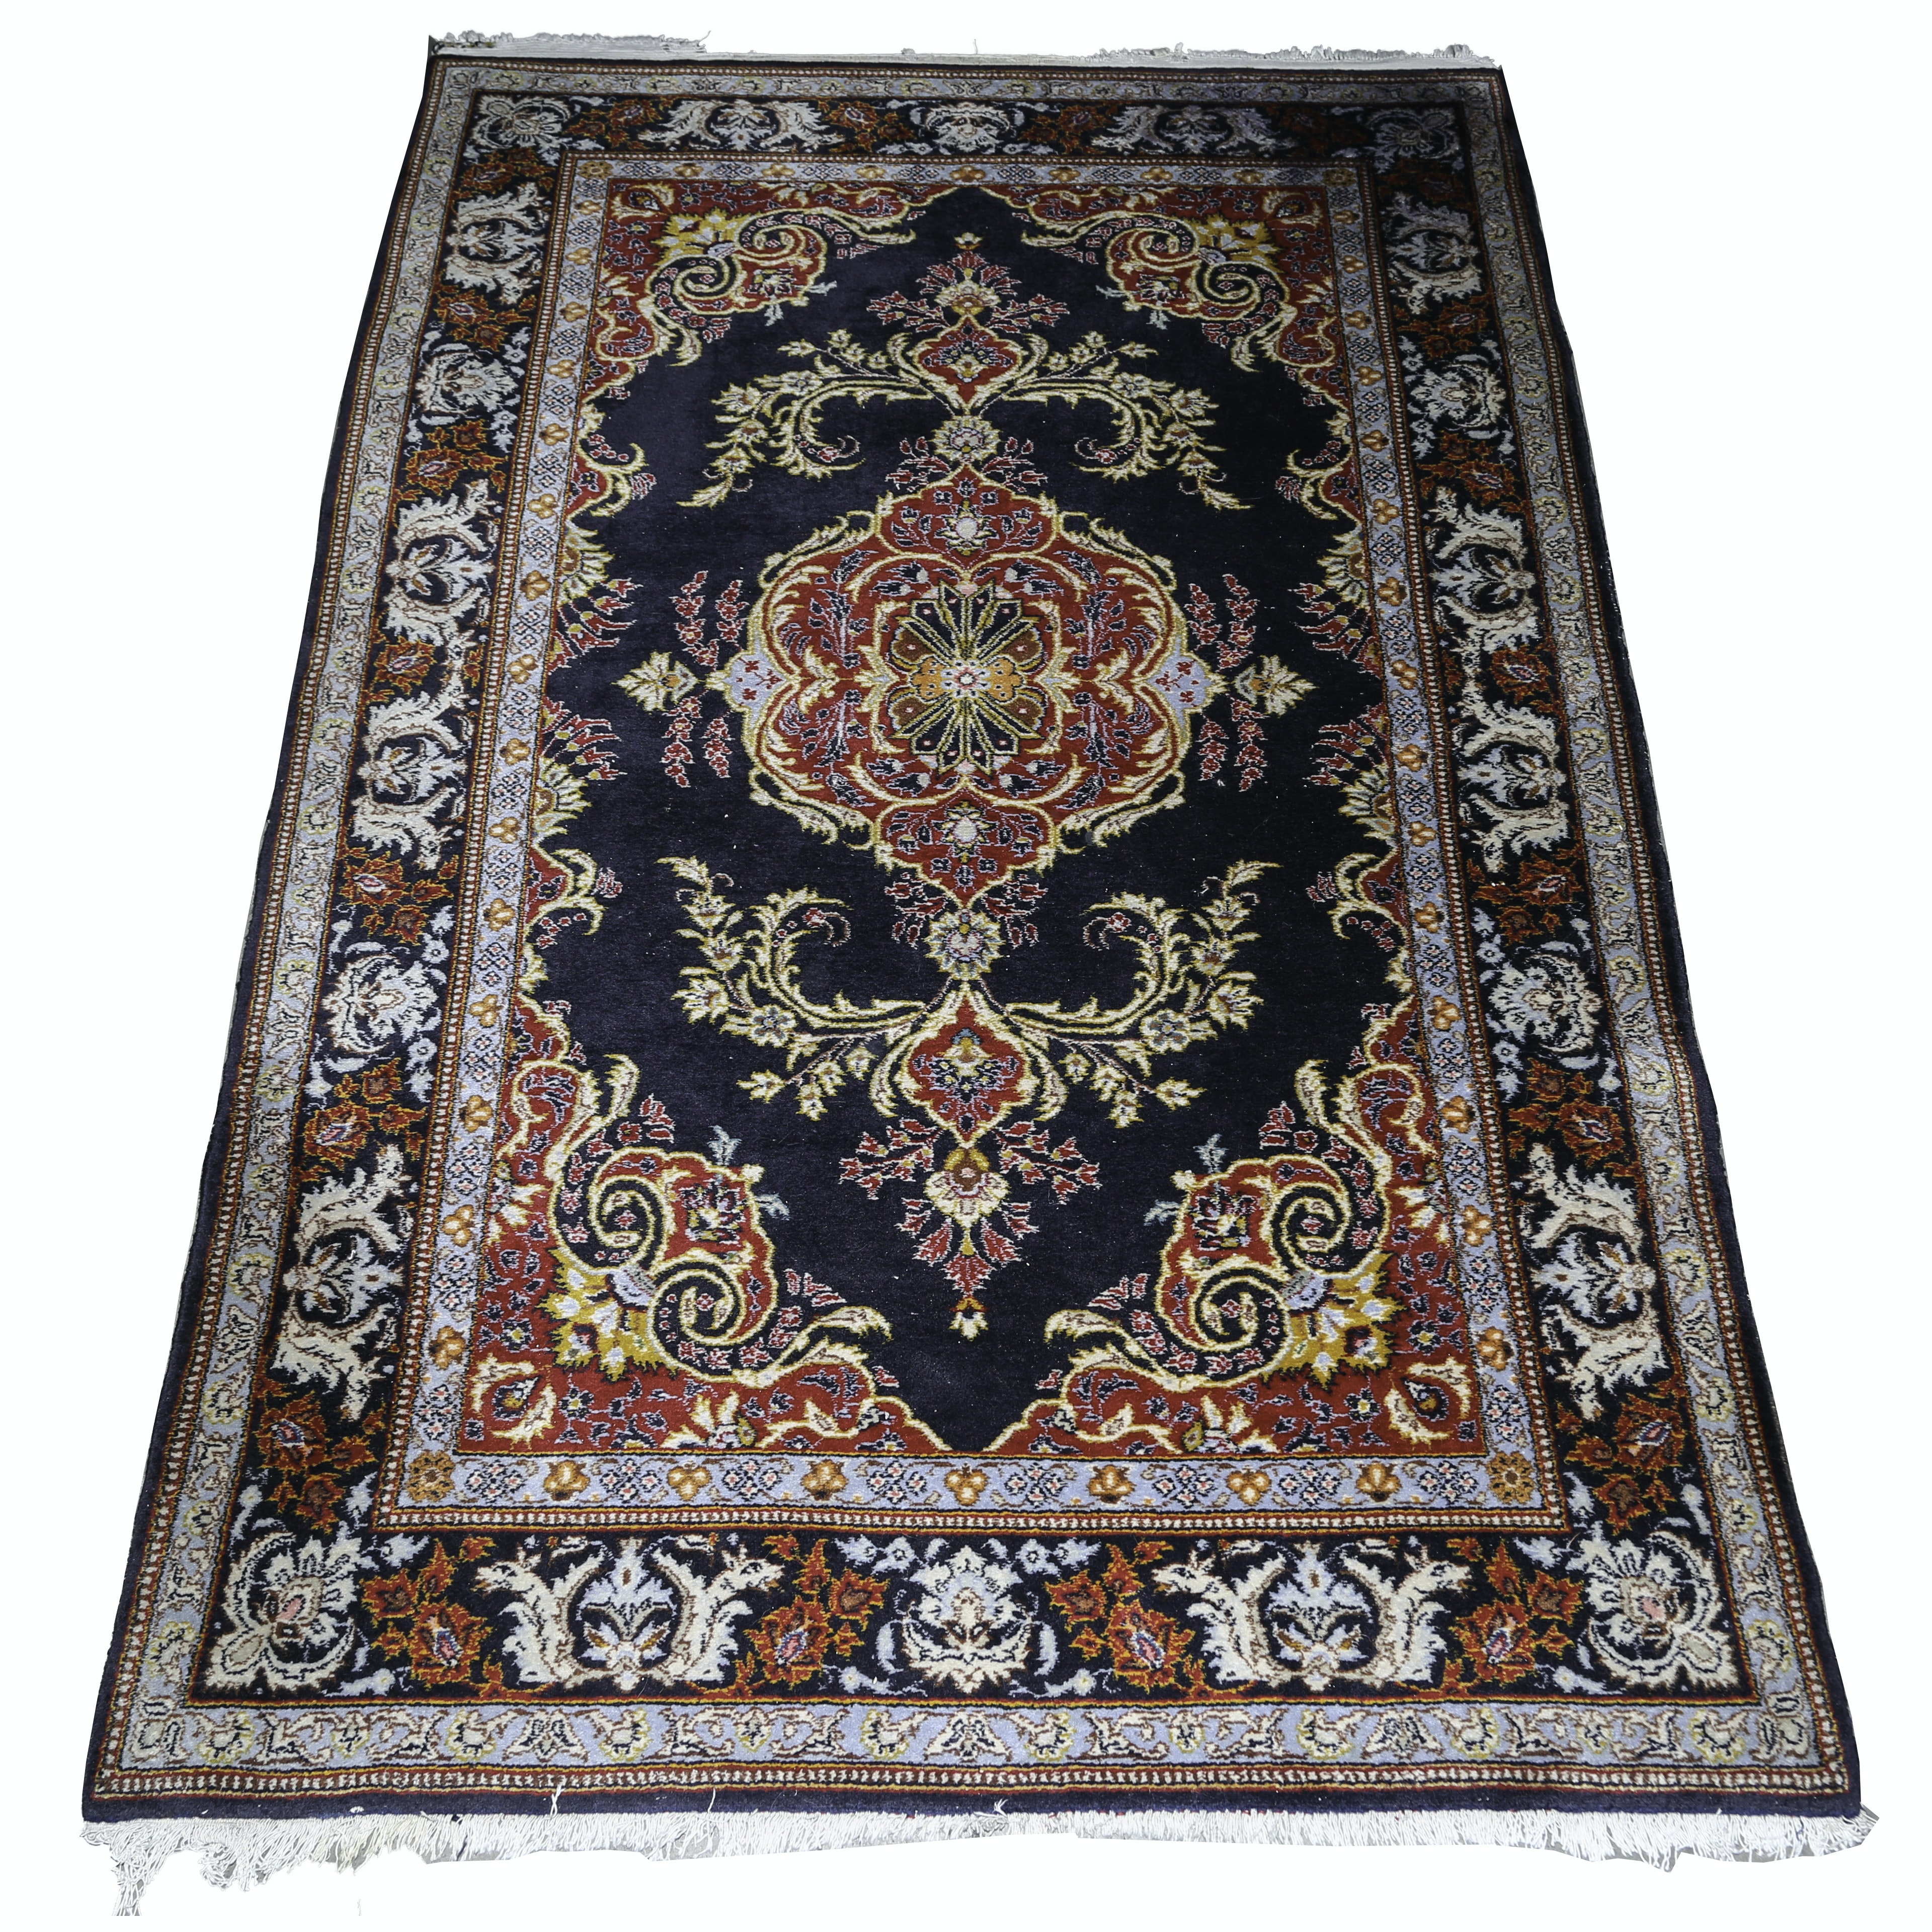 Vintage Hand-Knotted Indo-Persian Wool Area Rug